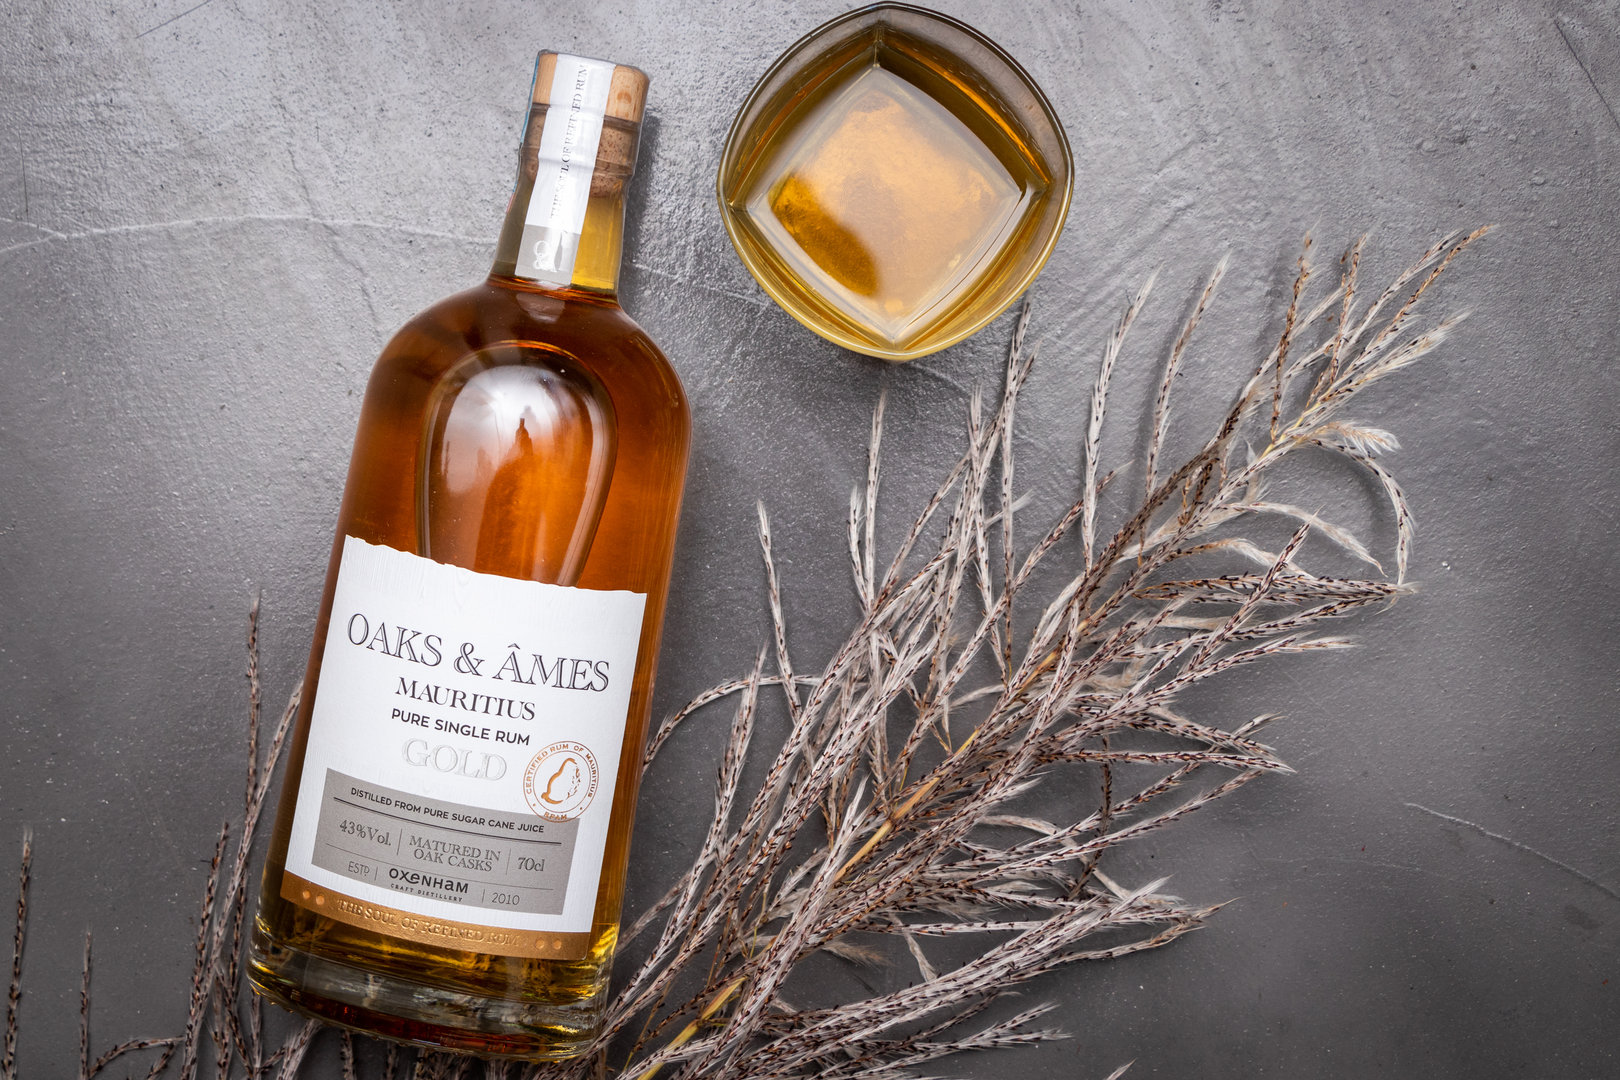 Oaks & Ames Gold Rum